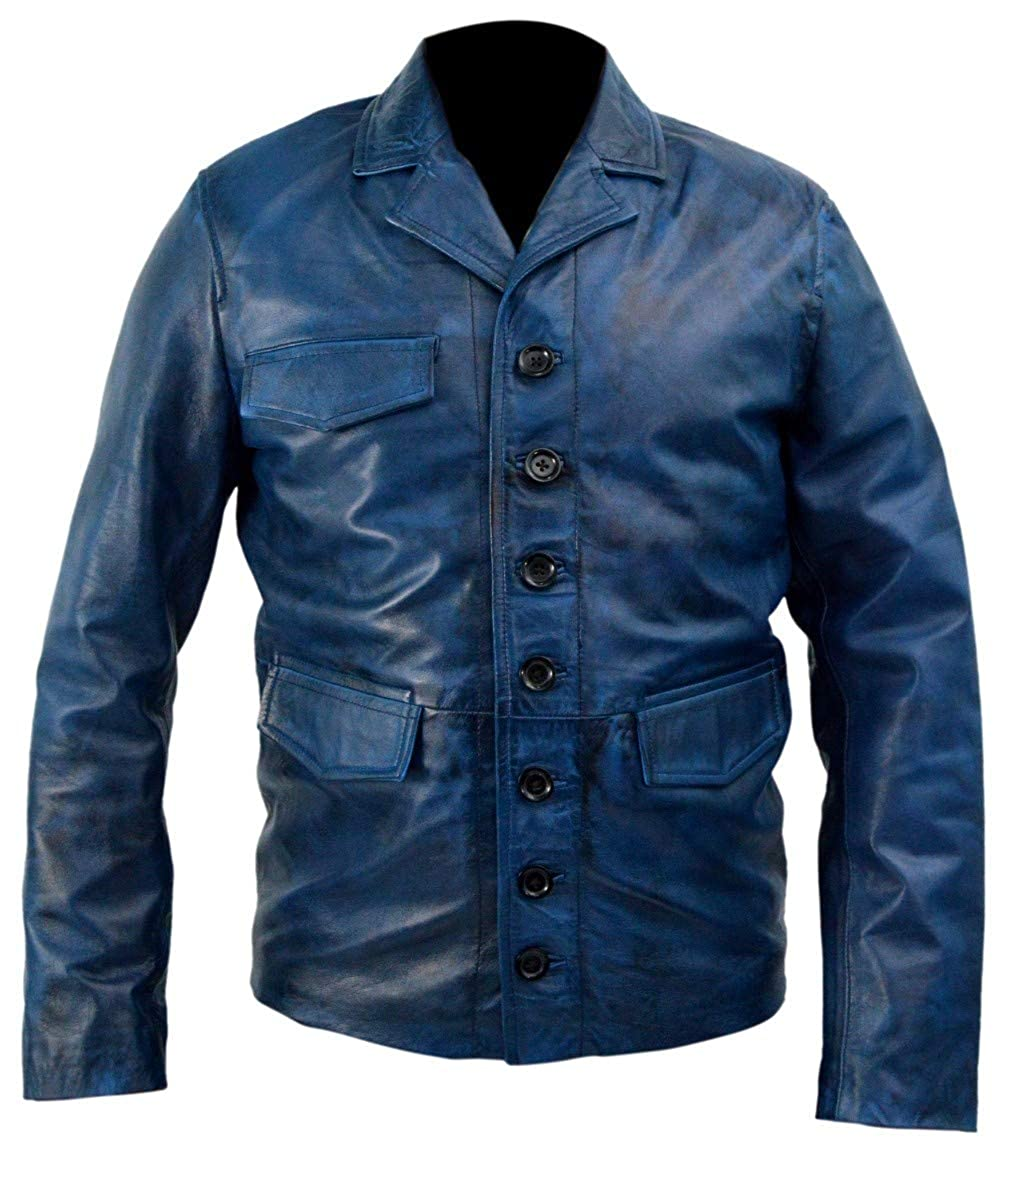 0ad43822 Shadow Moon (Ricky Whittle) American Gods Leather Leather Leather Jacket  blueee eff797